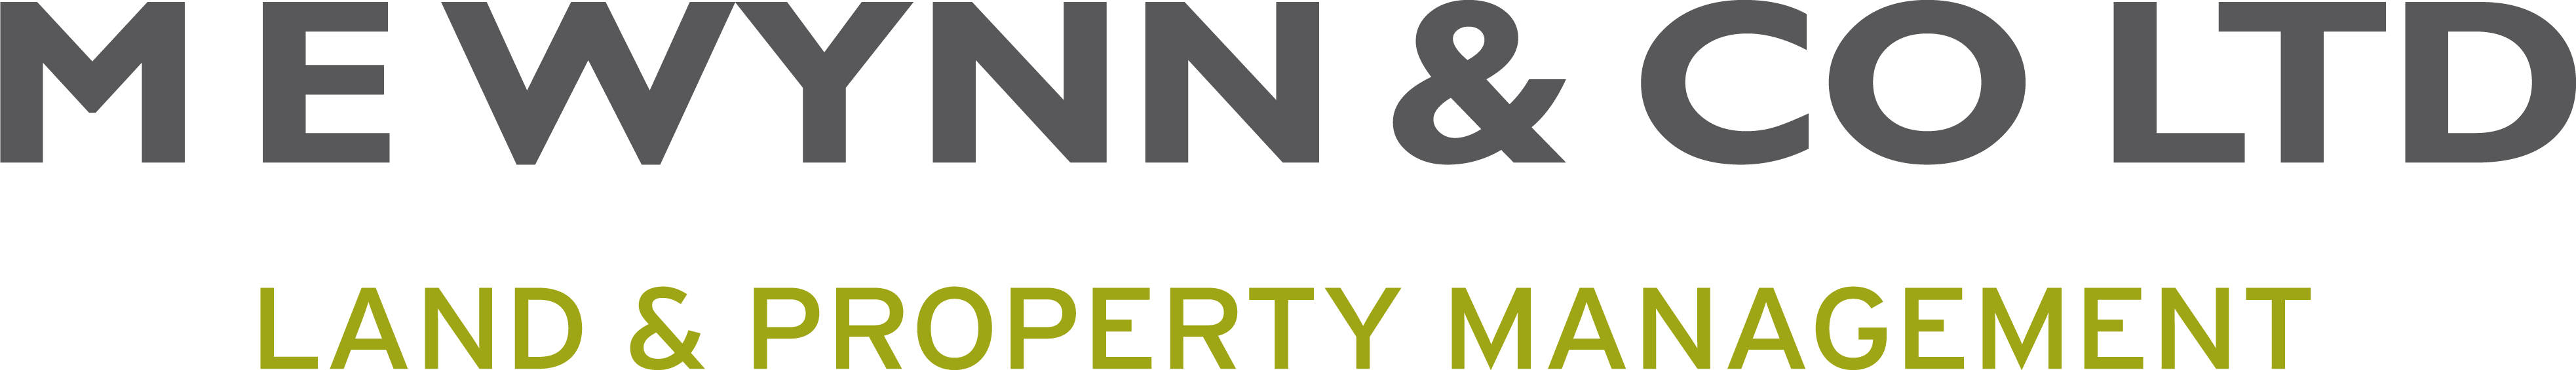 Mewynn & Co LTD, Land & Property Management logo